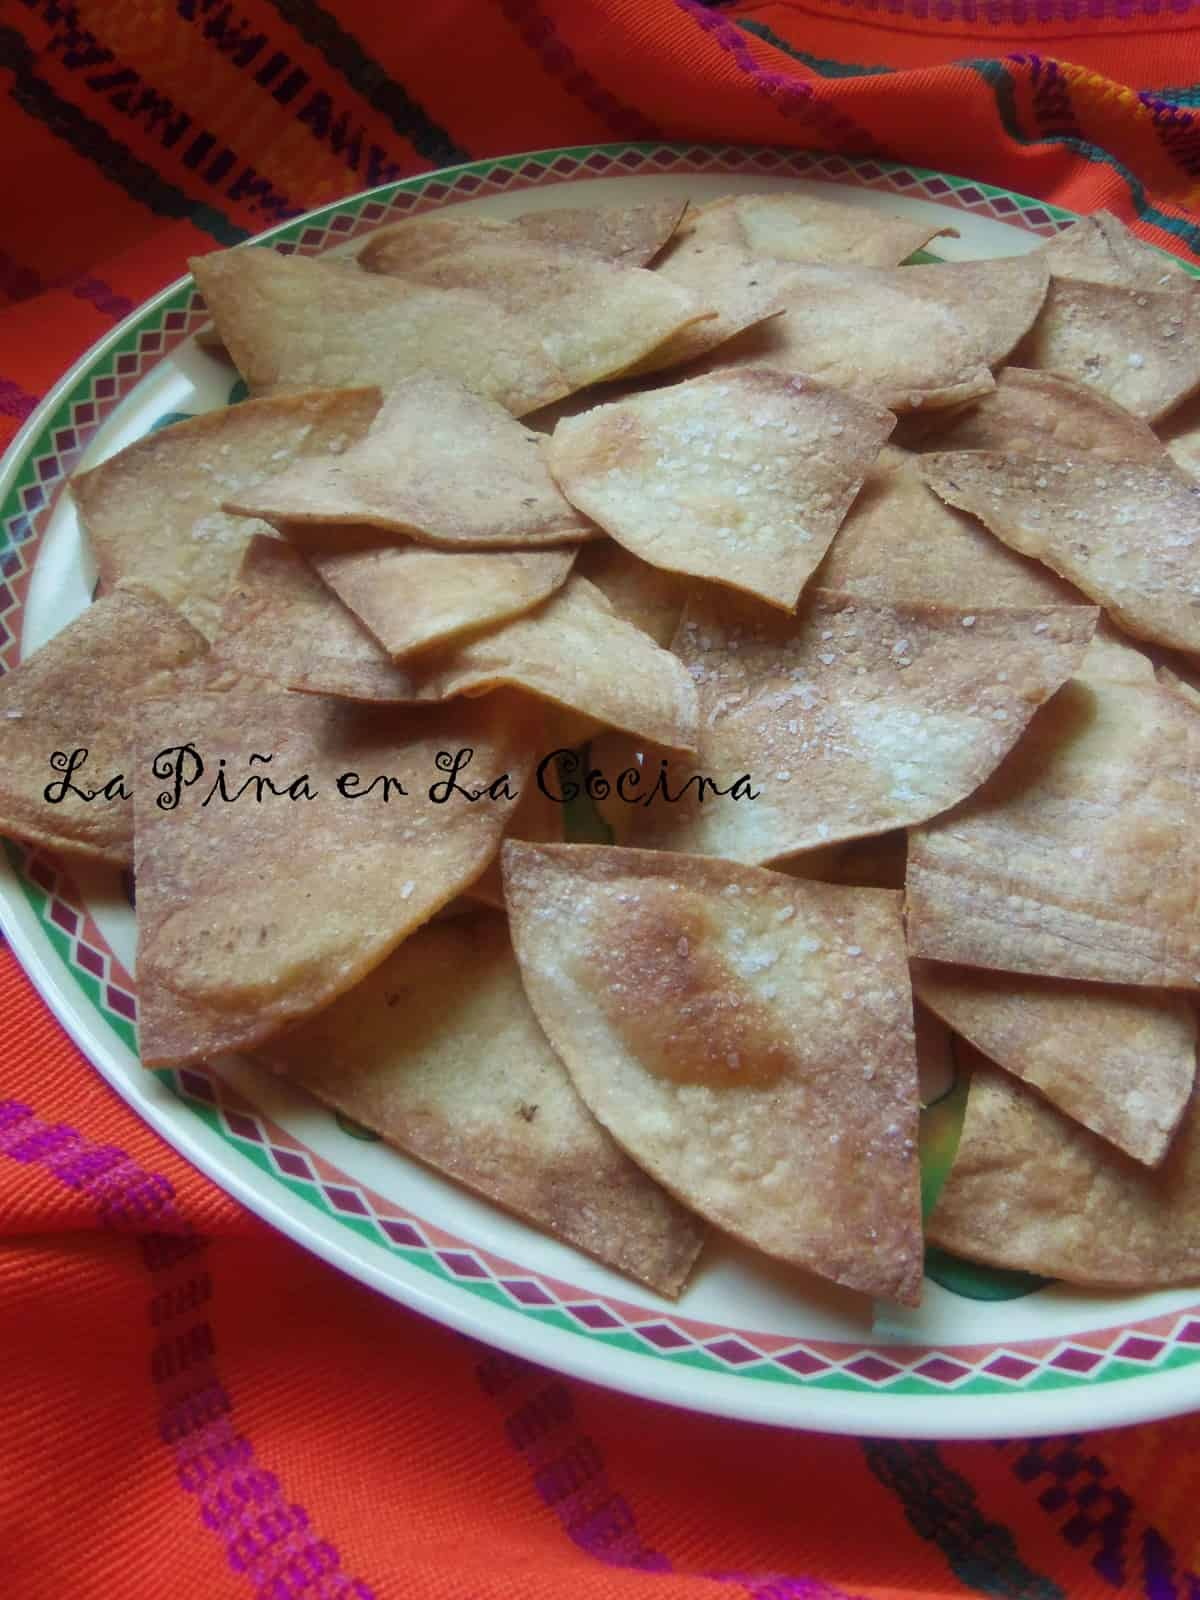 A lighter version to the traditional fried tortilla chip. Bring on the fresh salsa!